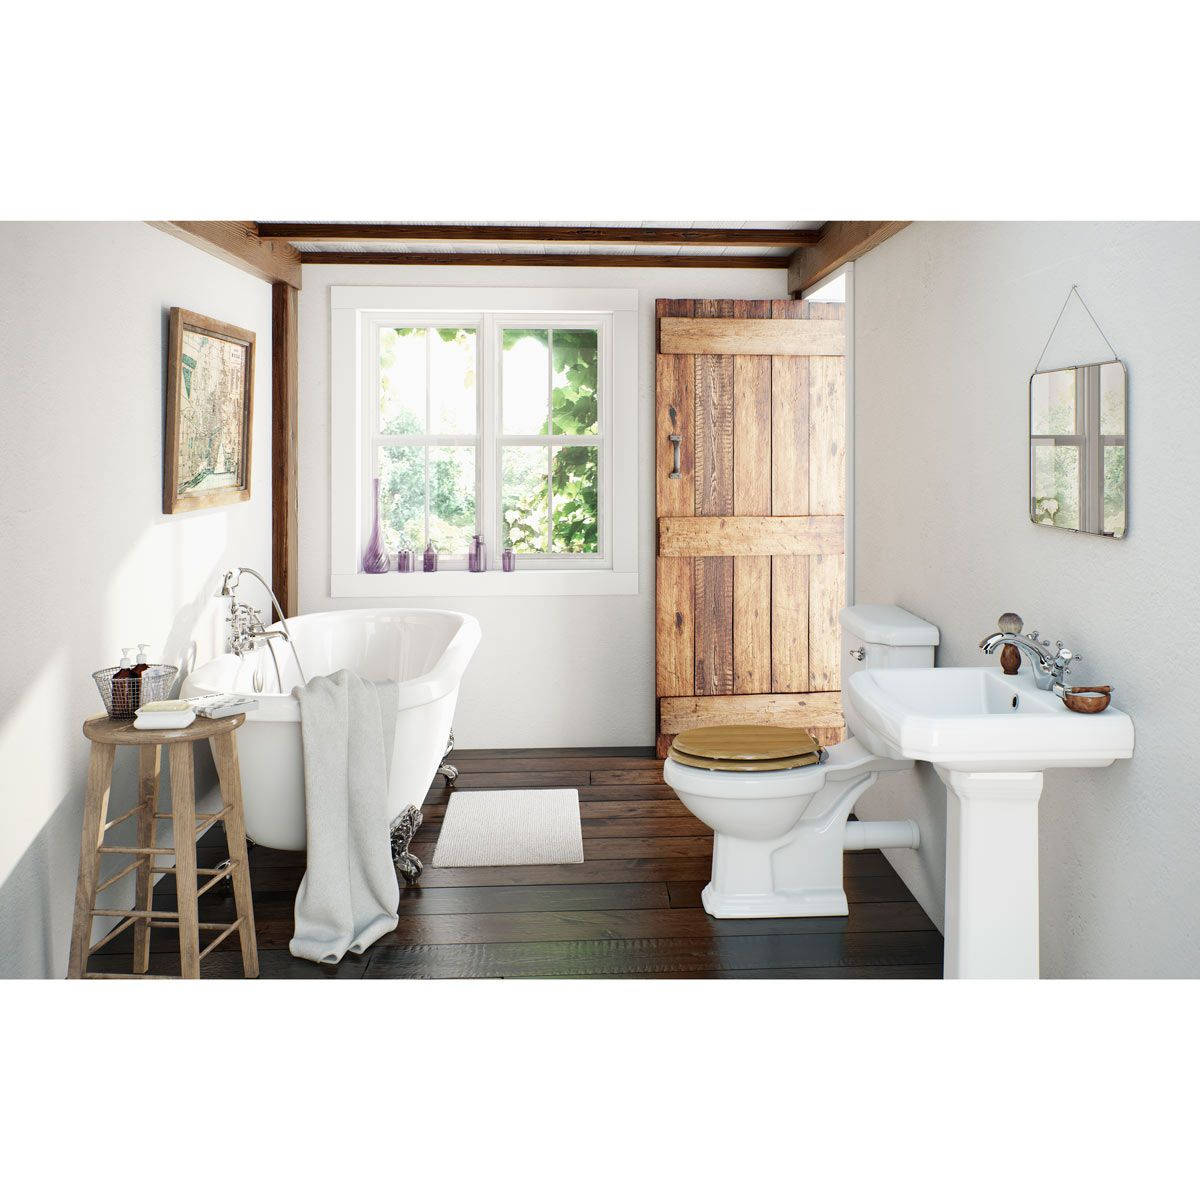 10 of the best bathroom suites on a budget | Roll top bath, Oak ...